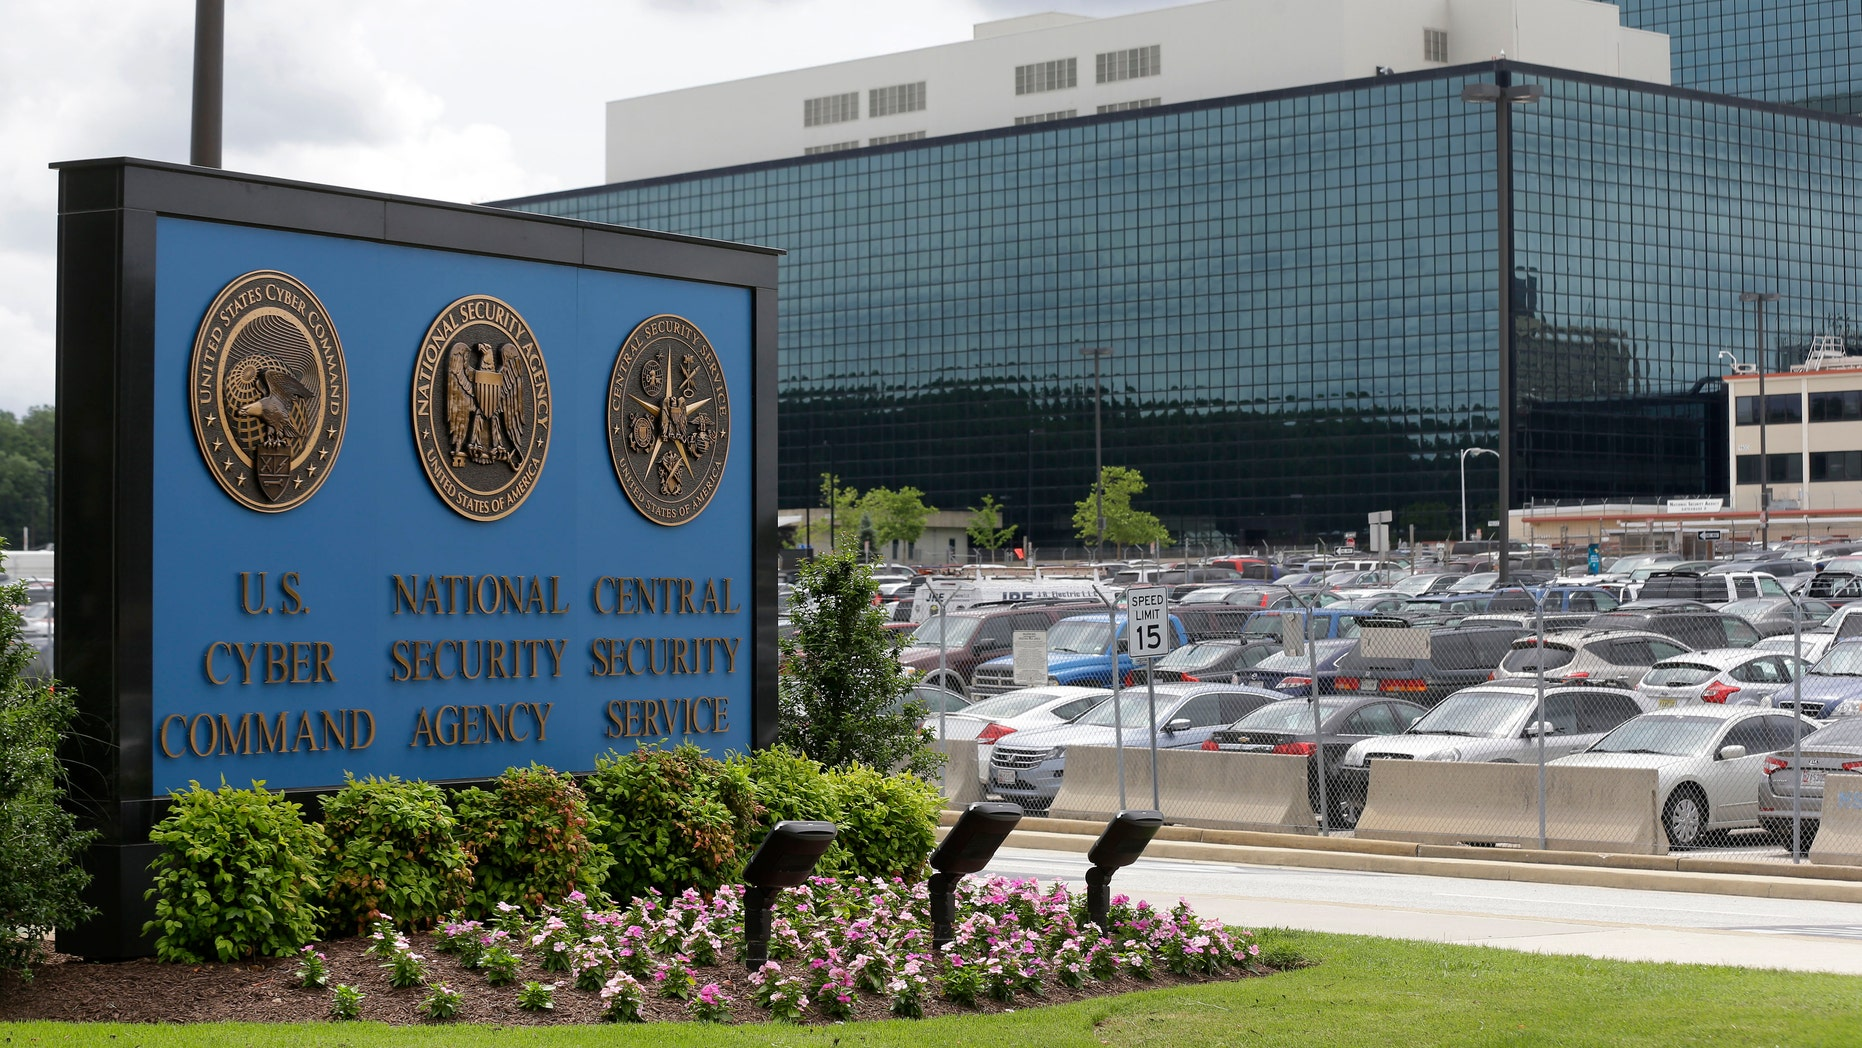 FILE - This June 6, 2013, file photo shows a sign outside the National Security Agency (NSA) campus in Fort Meade, Md. A White House review of U.S. surveillance programs has, for now, given Congress a bit of political cover for failing to enact reforms to spy systems this year and could break a legislative logjam after months of global outrage over privacy intrusions. Since last summer, a deeply divided Congress has tussled without resolution over competing plans to protect Americans' privacy rights by limiting National Security Agency powers to track terrorists.(AP Photo/Patrick Semansky, File)